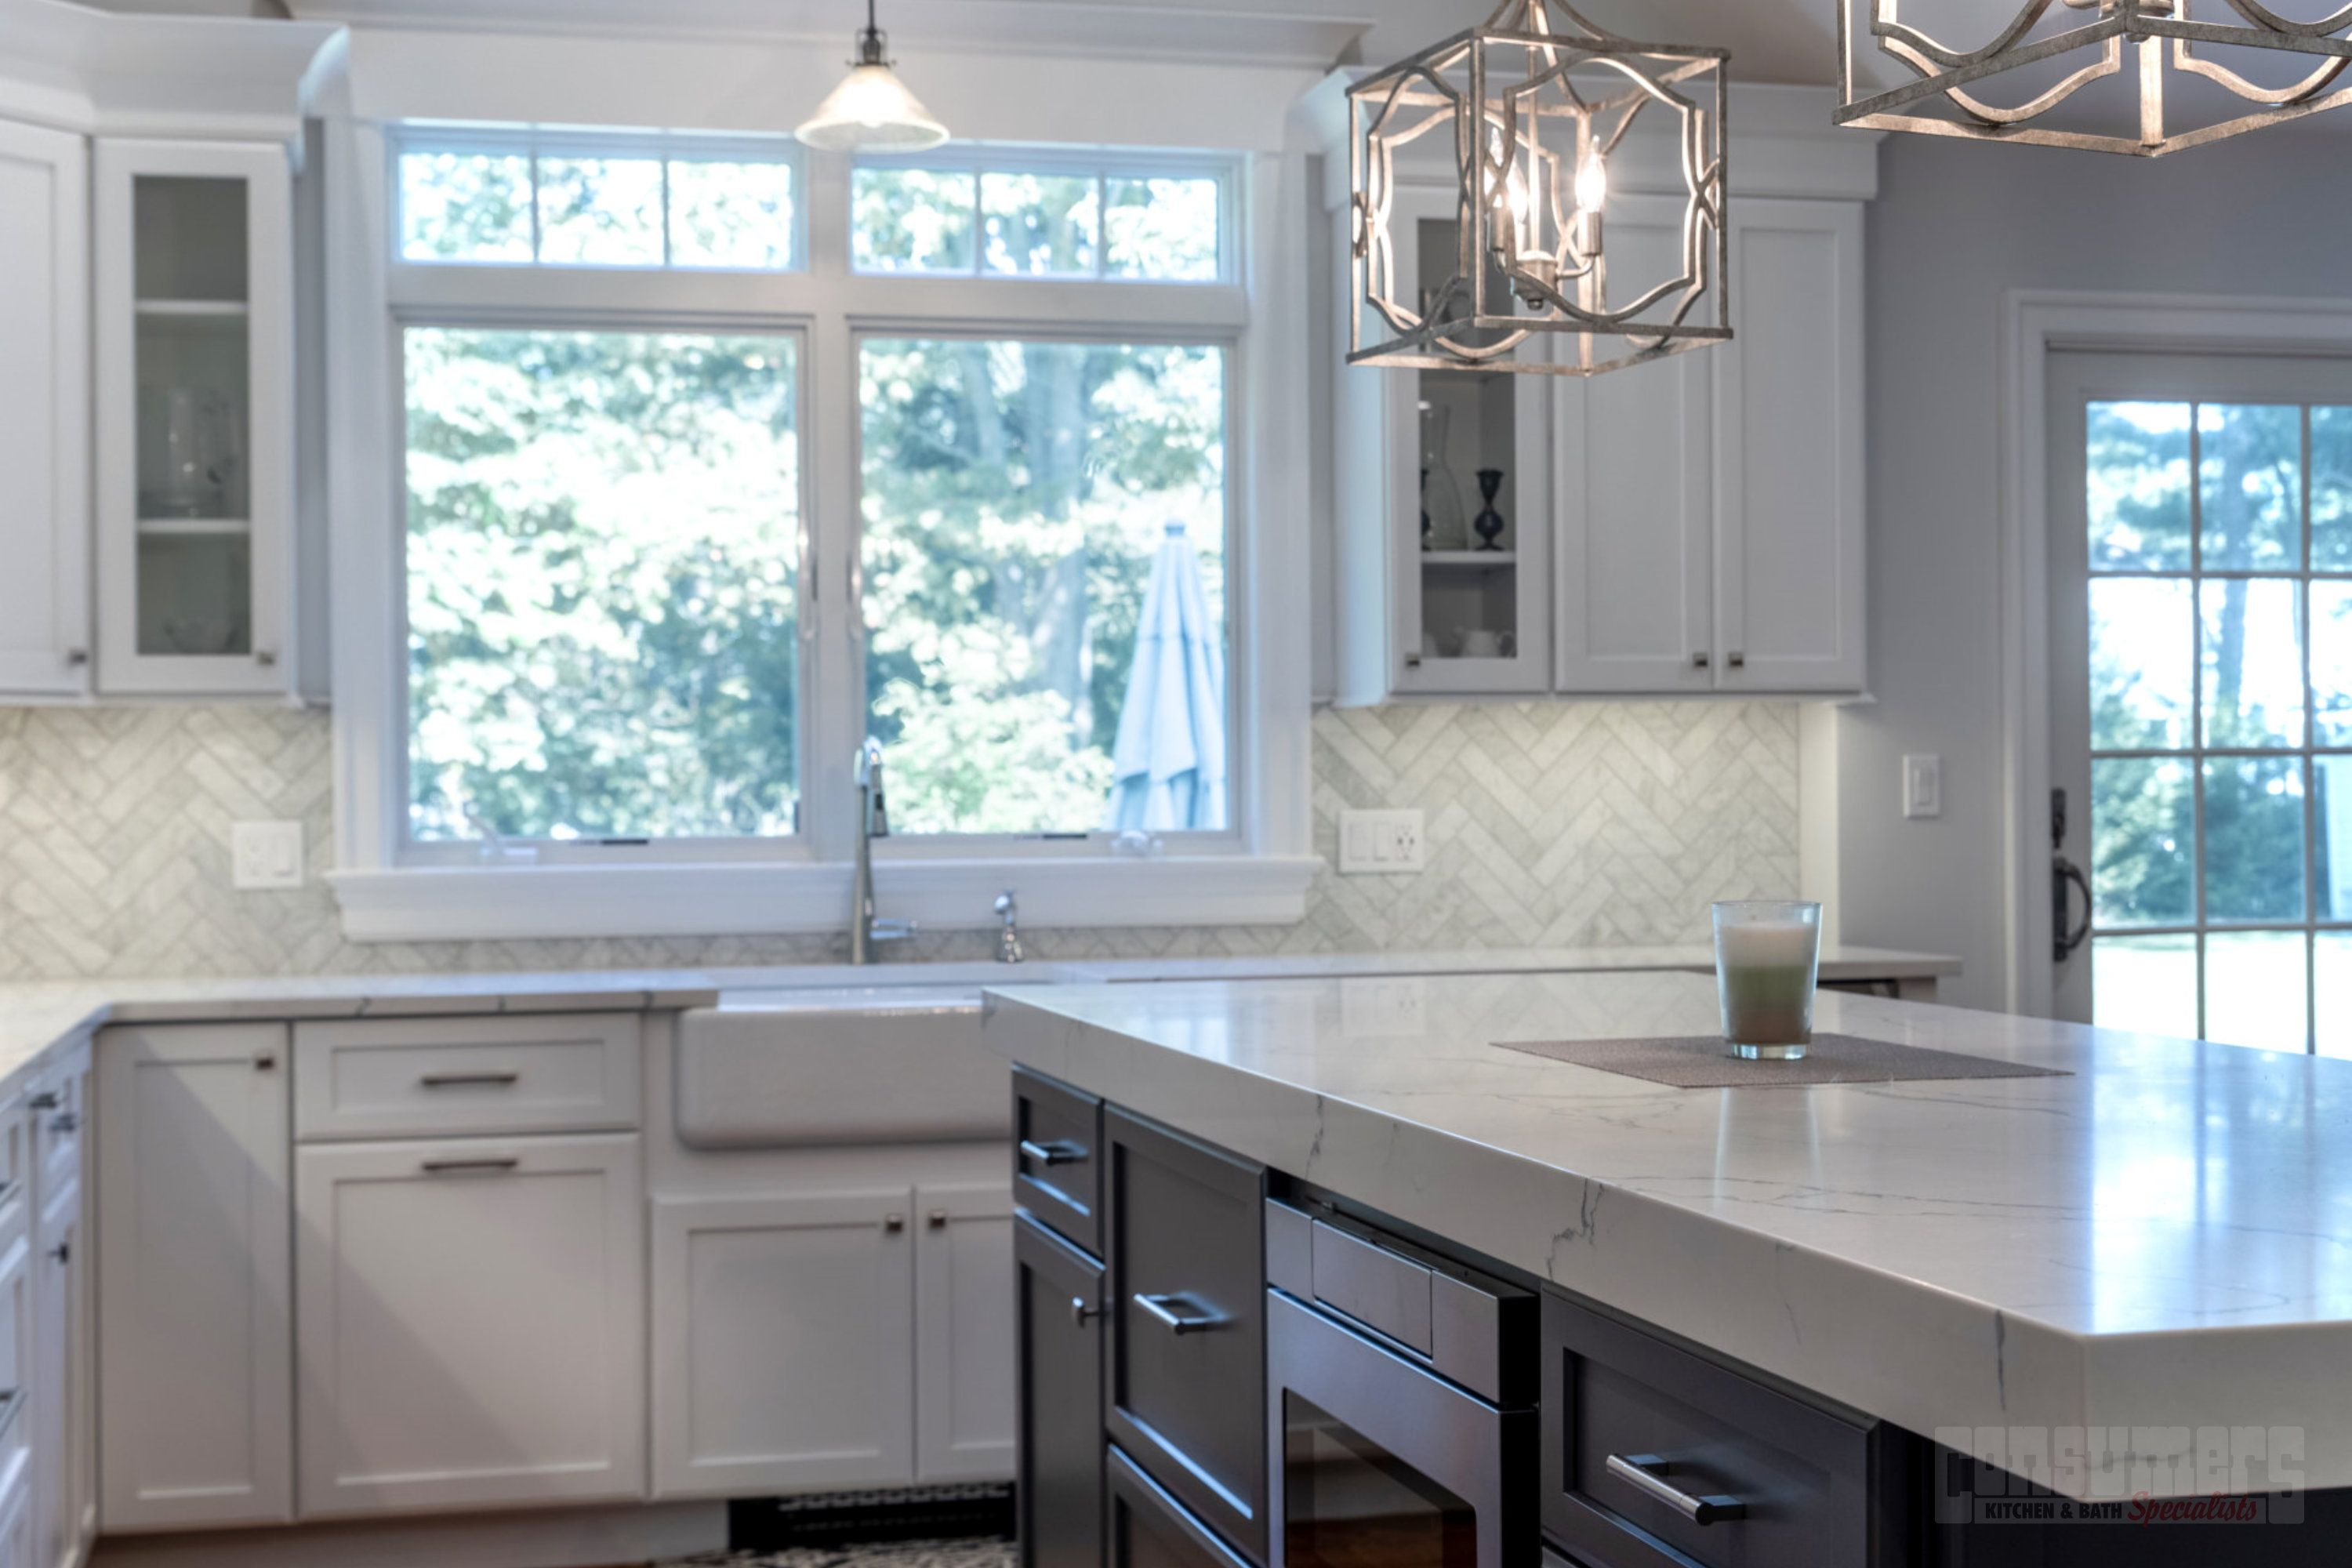 Pin By Consumers Kitchens Baths On Huntington Classique In 2020 Kitchen Gallery Maple Cabinets Kitchen And Bath